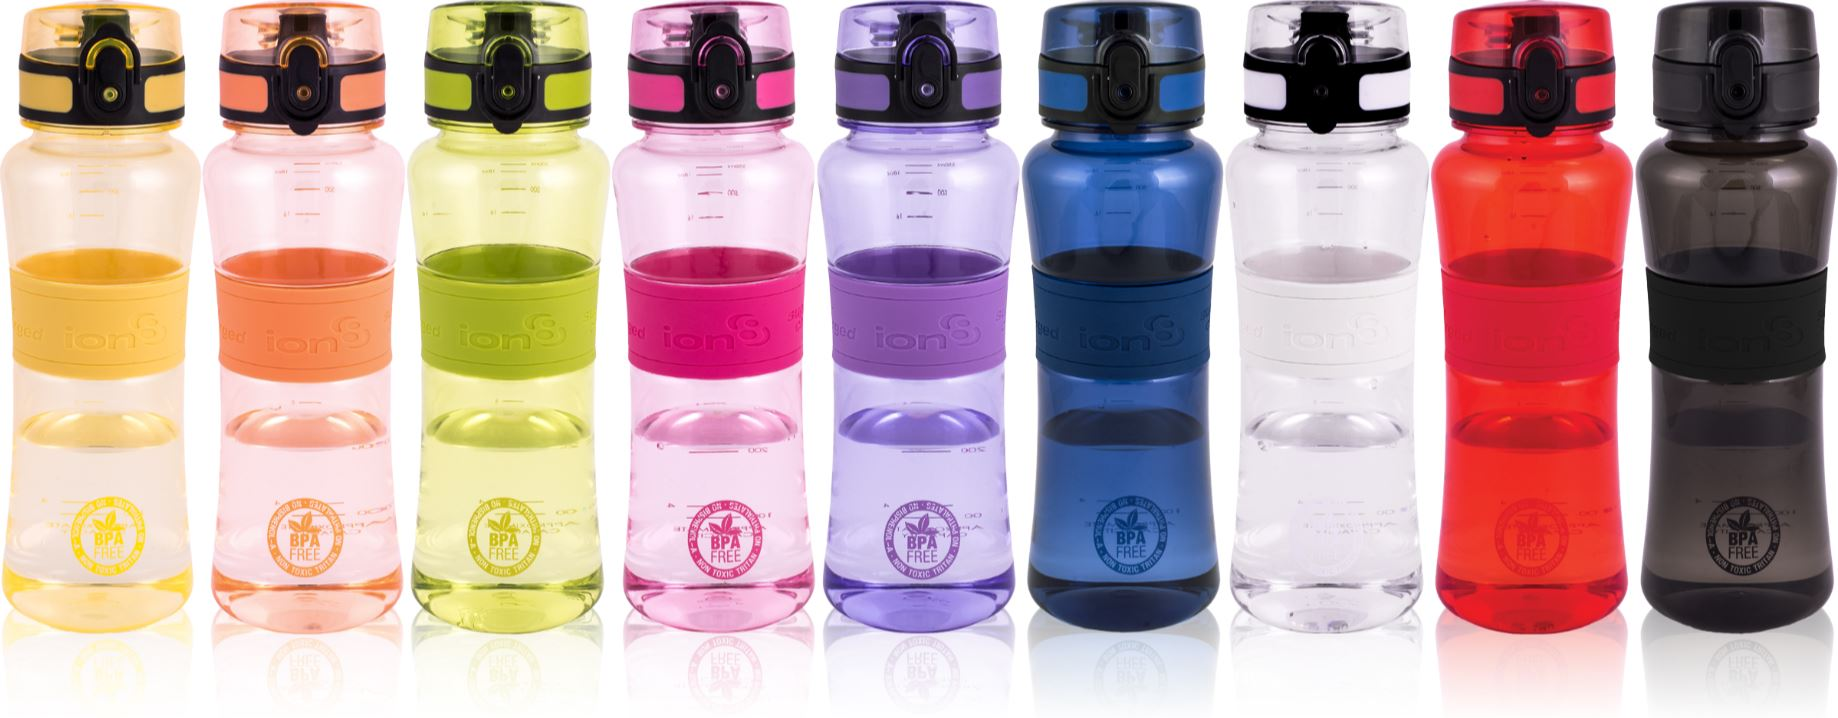 REVIEW: KEEP YOUR COOL WITH ION8 WATER BOTTLE